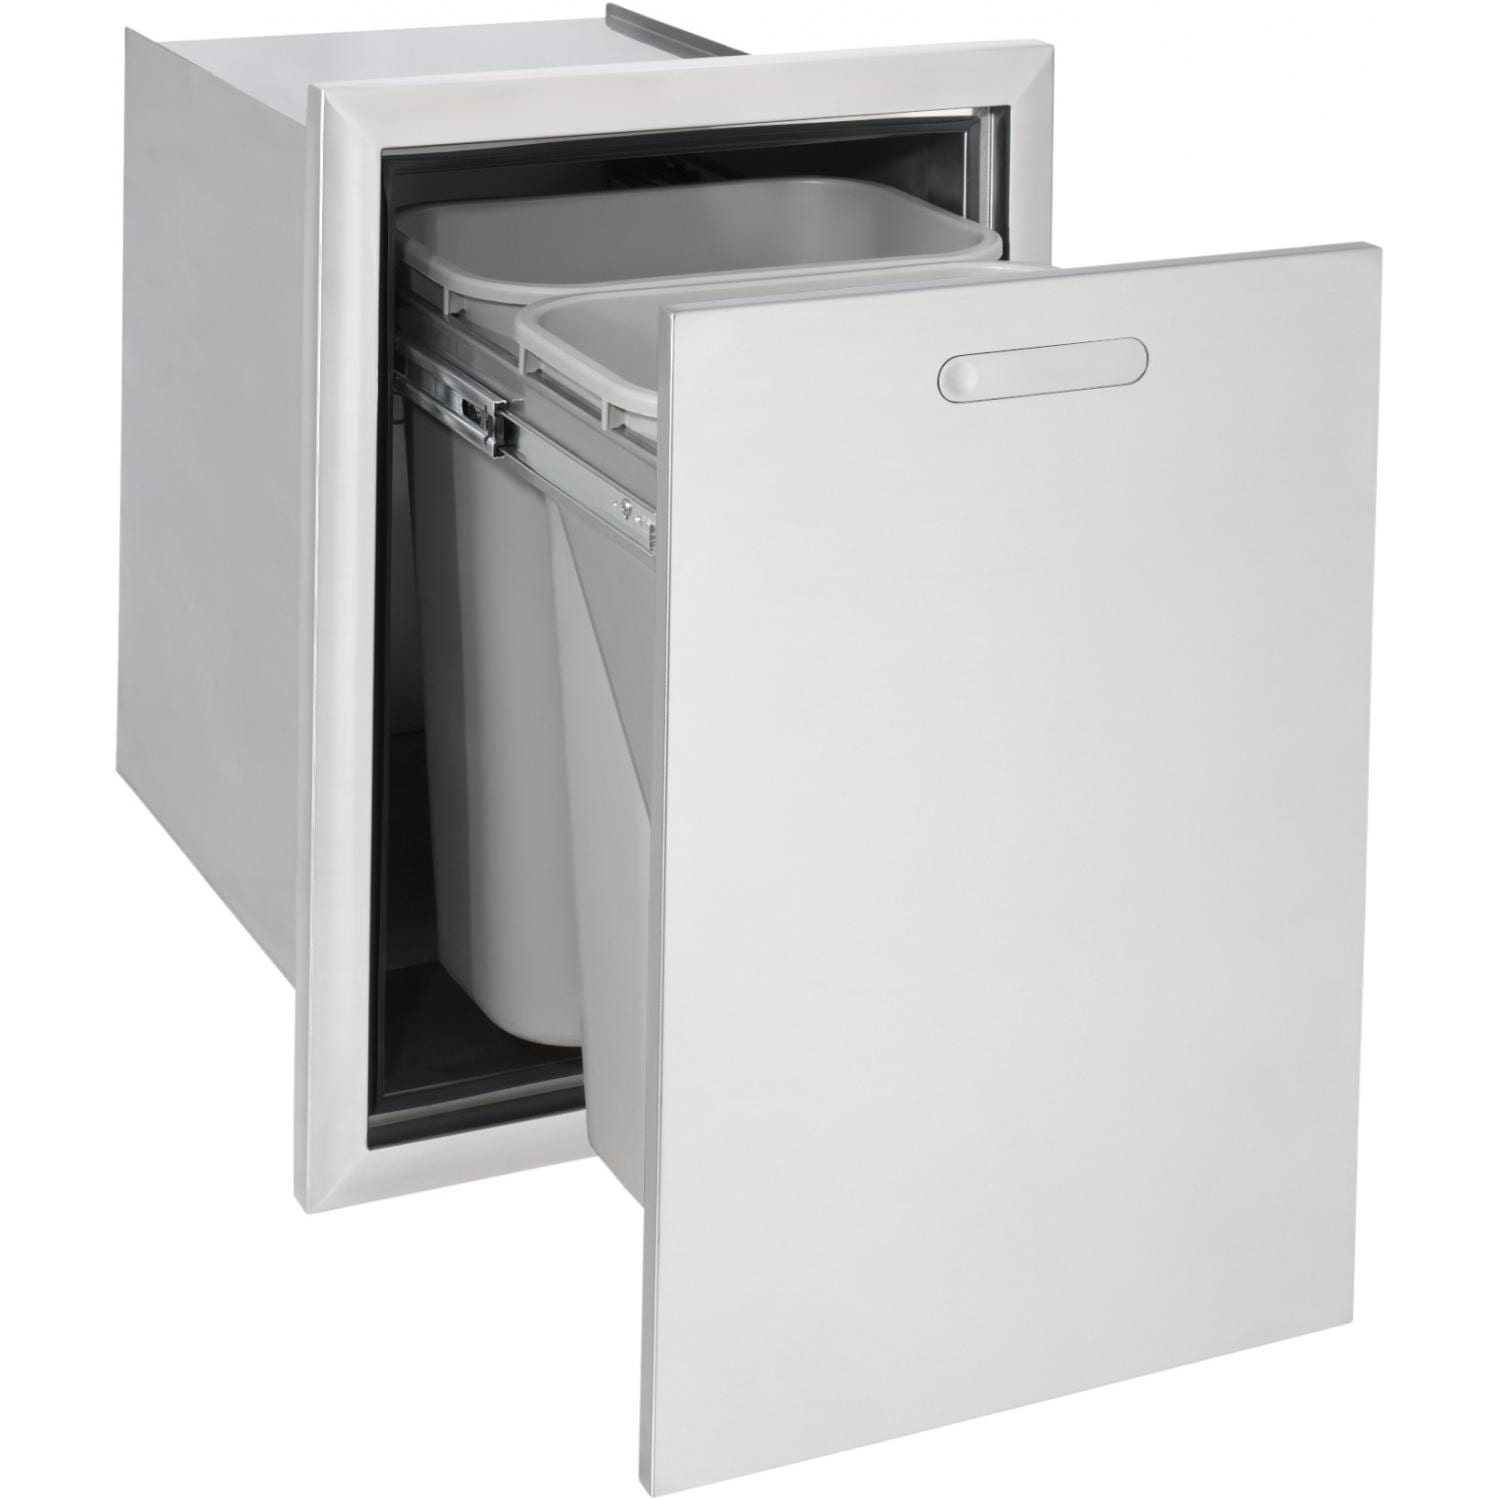 Trash Bins & Chutes | The Outdoor Store